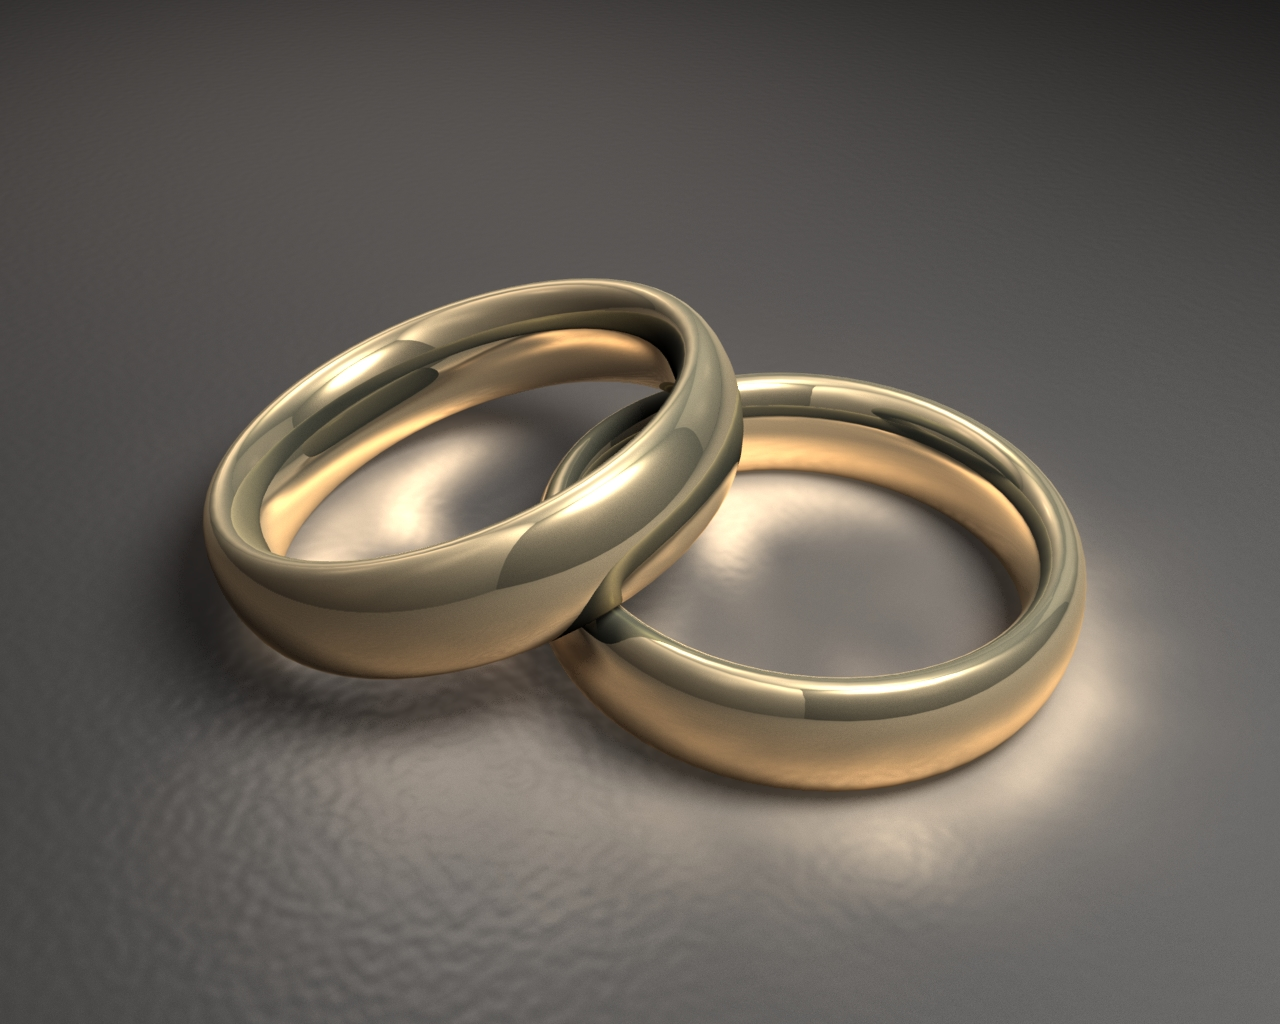 Michael Ignatieff calls for new discussion on marriage